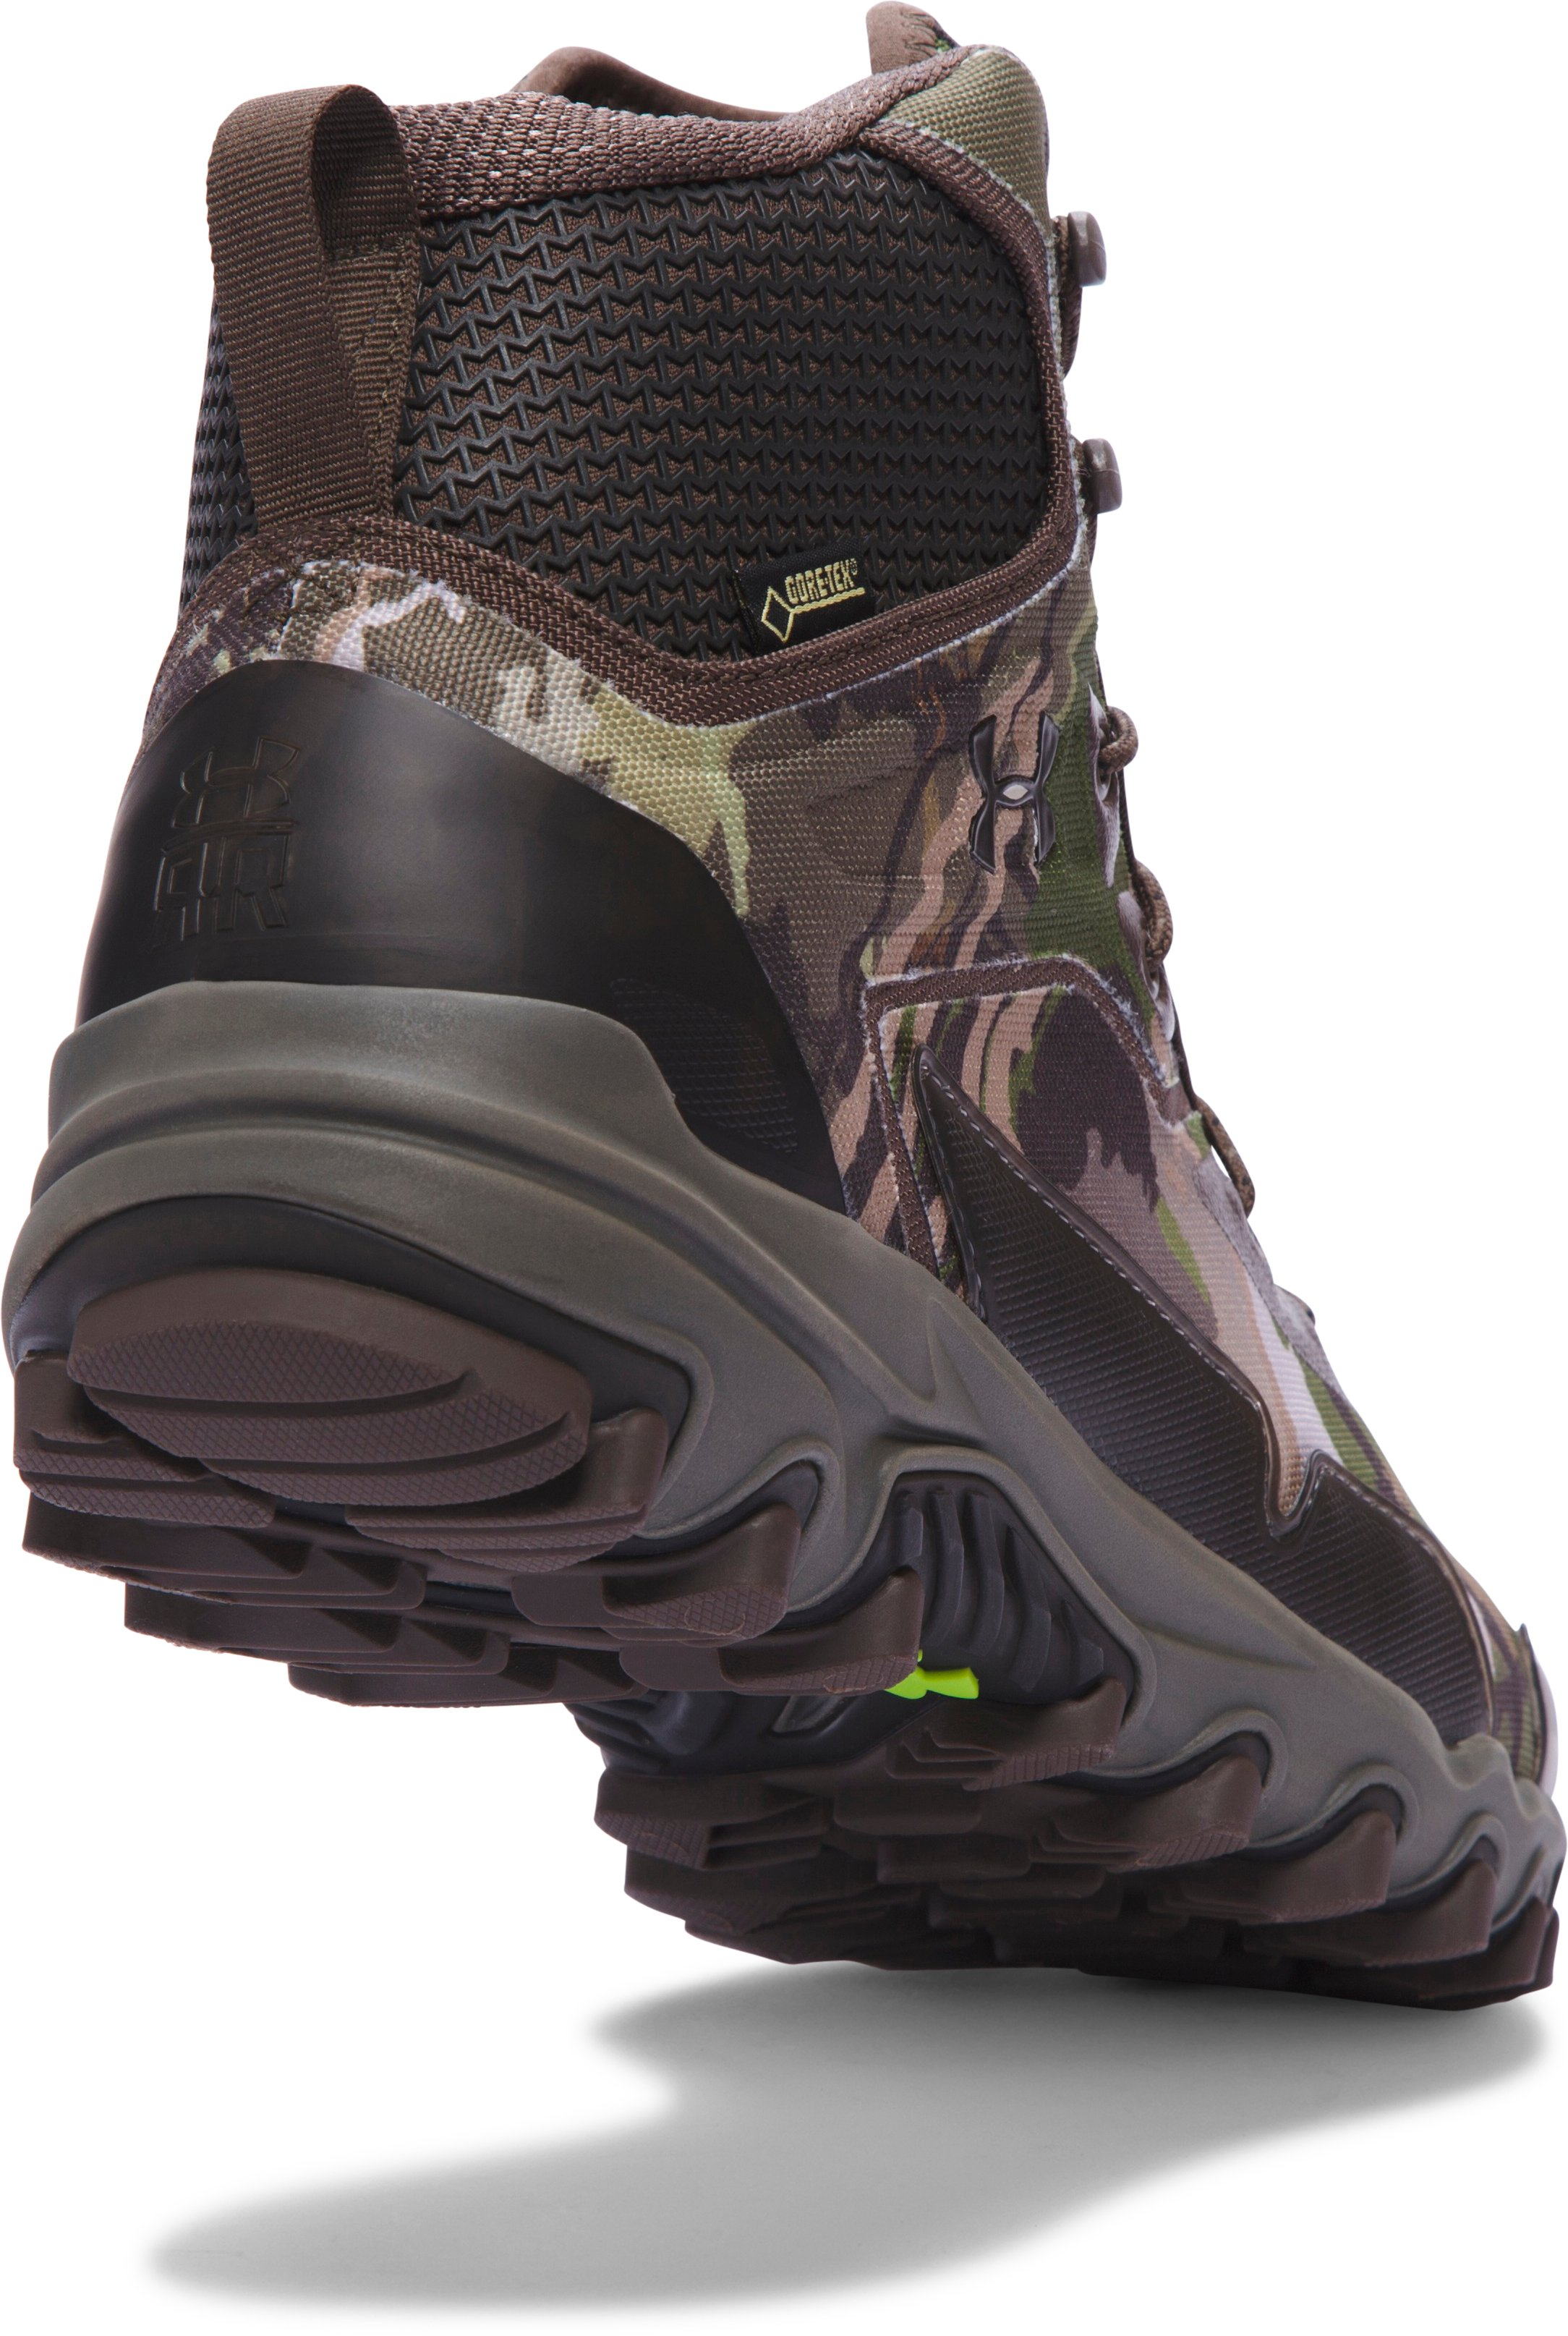 Men's UA Ridge Reaper™ Extreme Hunting Boots, RIDGE REAPER® FOREST, undefined